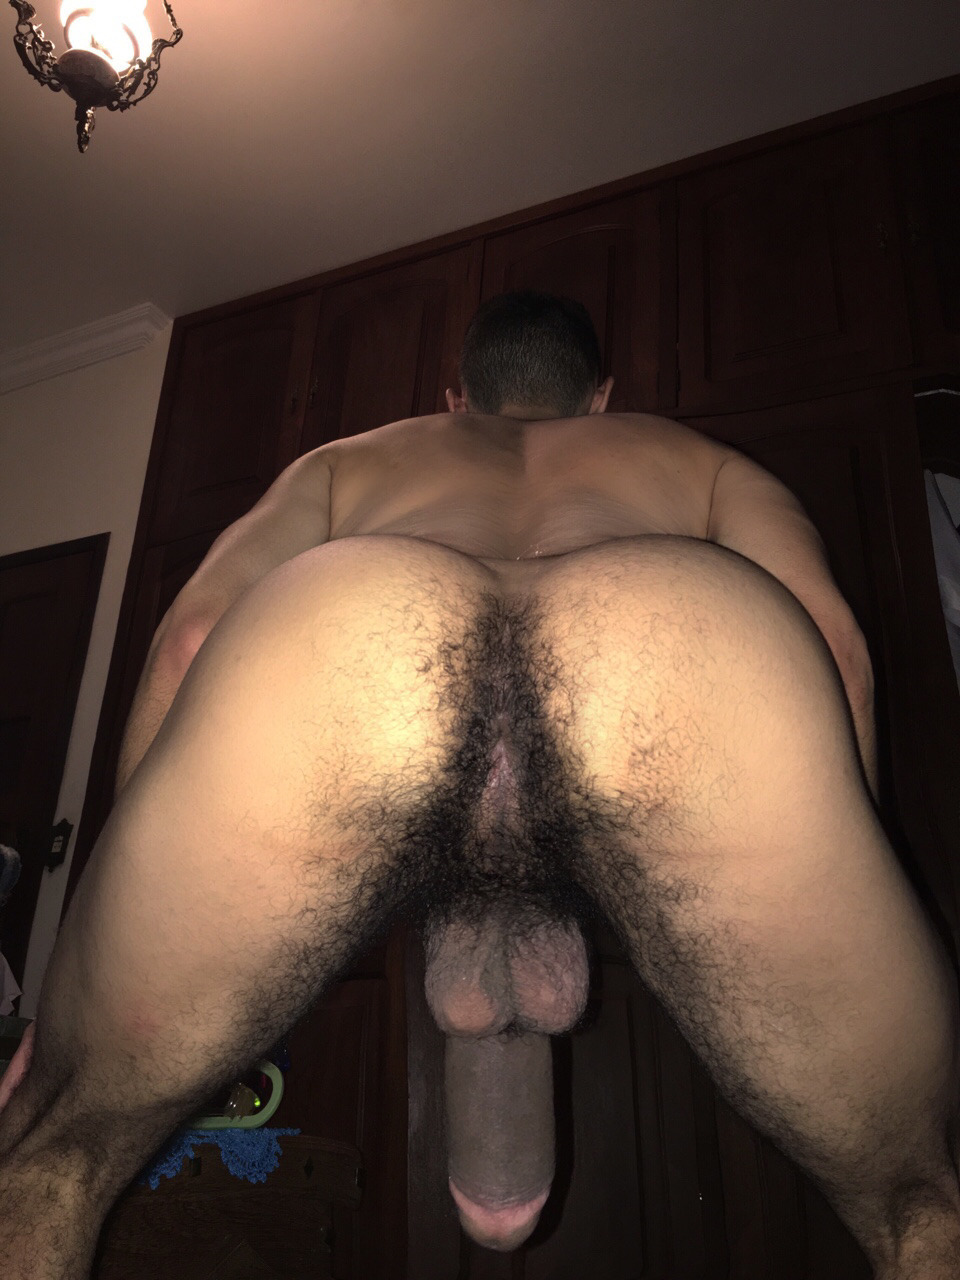 Man nude hairy ass